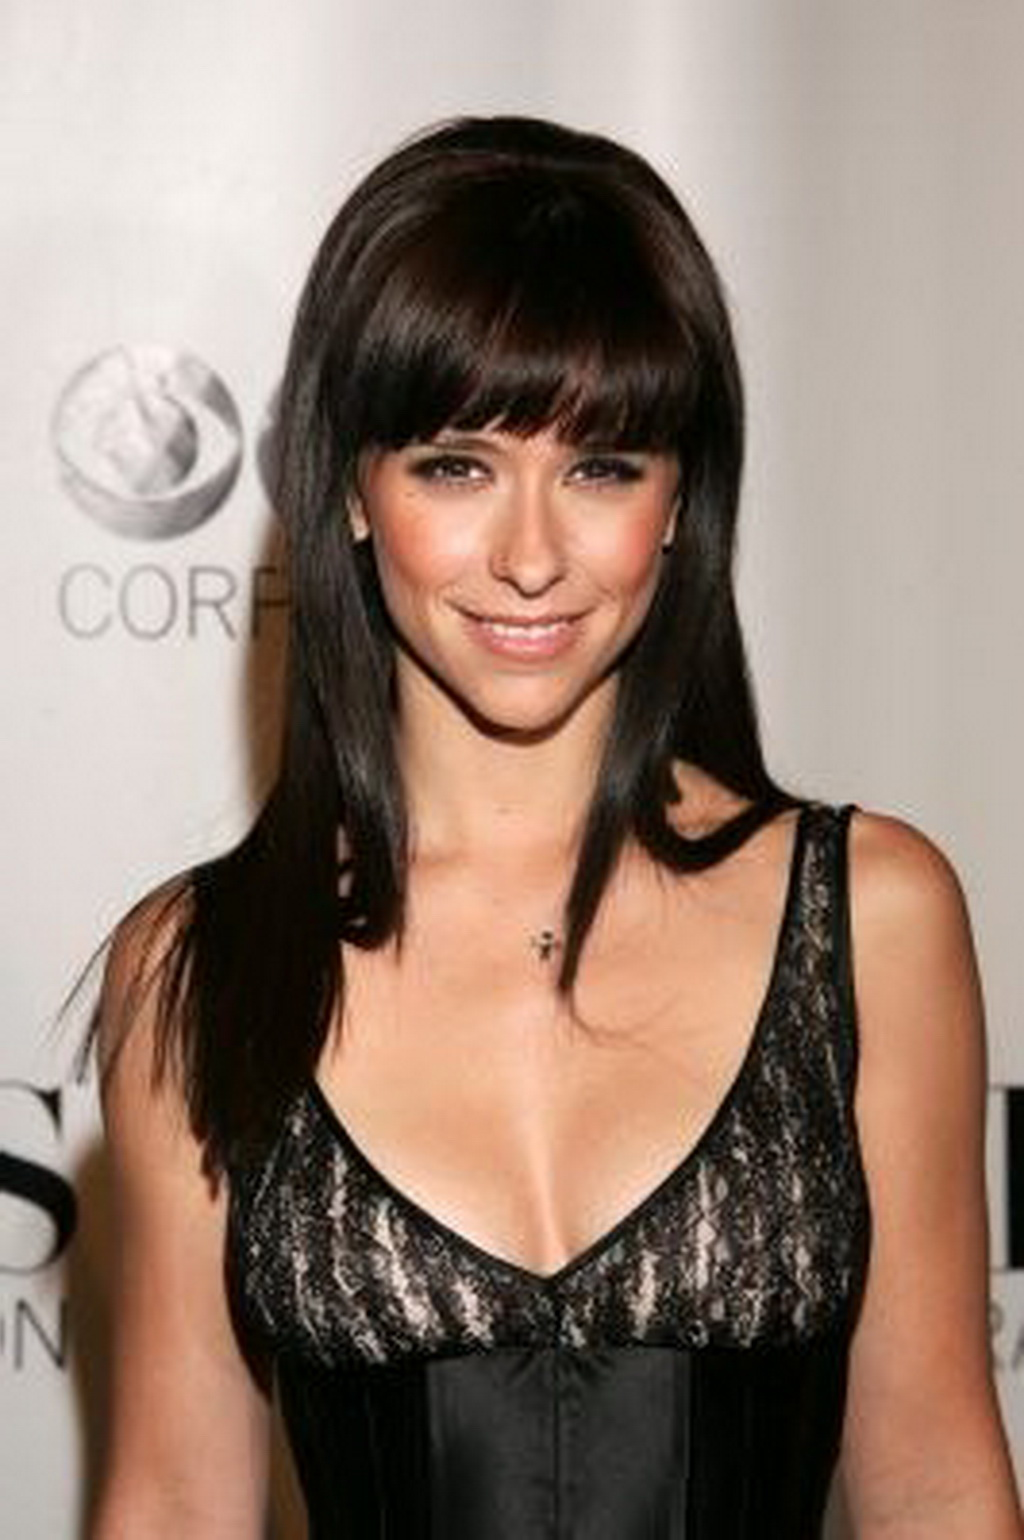 f Jennifer celebrity love hewitt